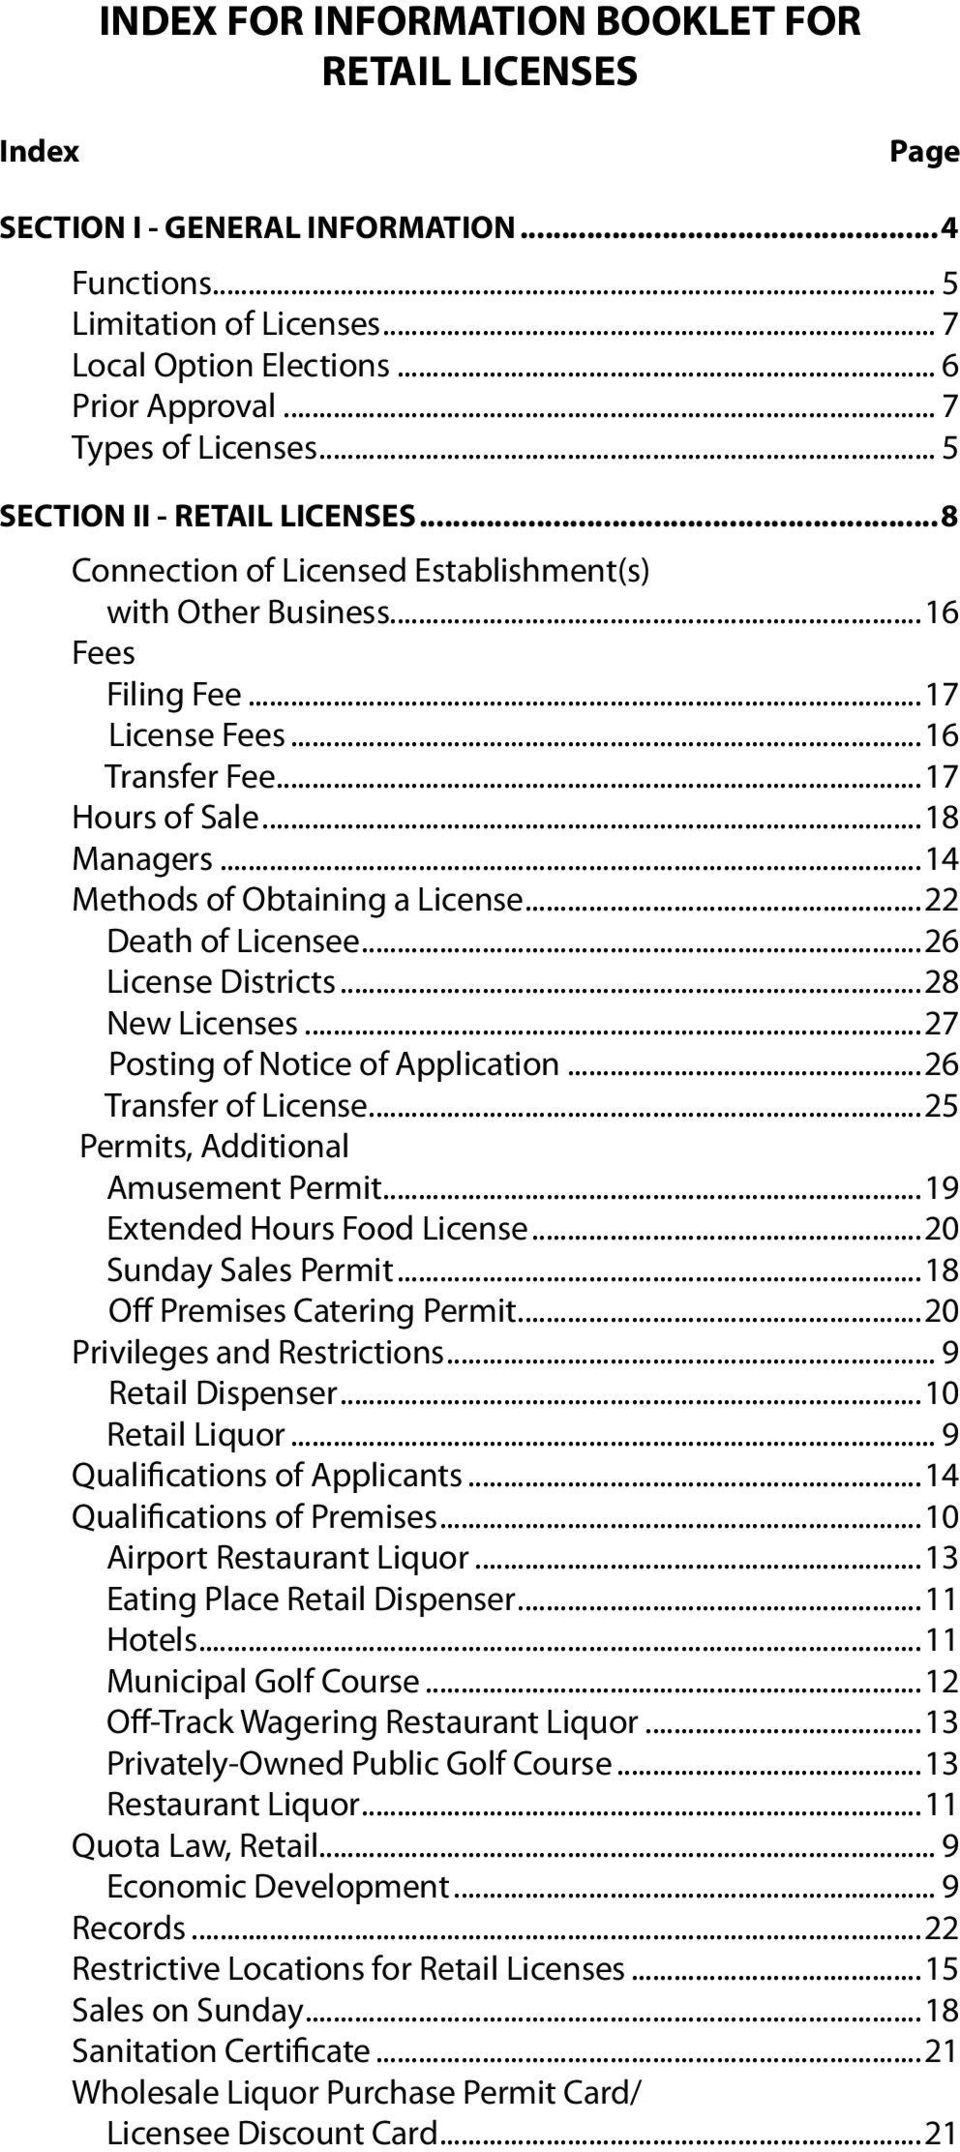 ..18 Managers...14 Methods of Obtaining a License...22 Death of Licensee...26 License Districts...28 New Licenses...27. Posting of Notice of Application...26 Transfer of License.